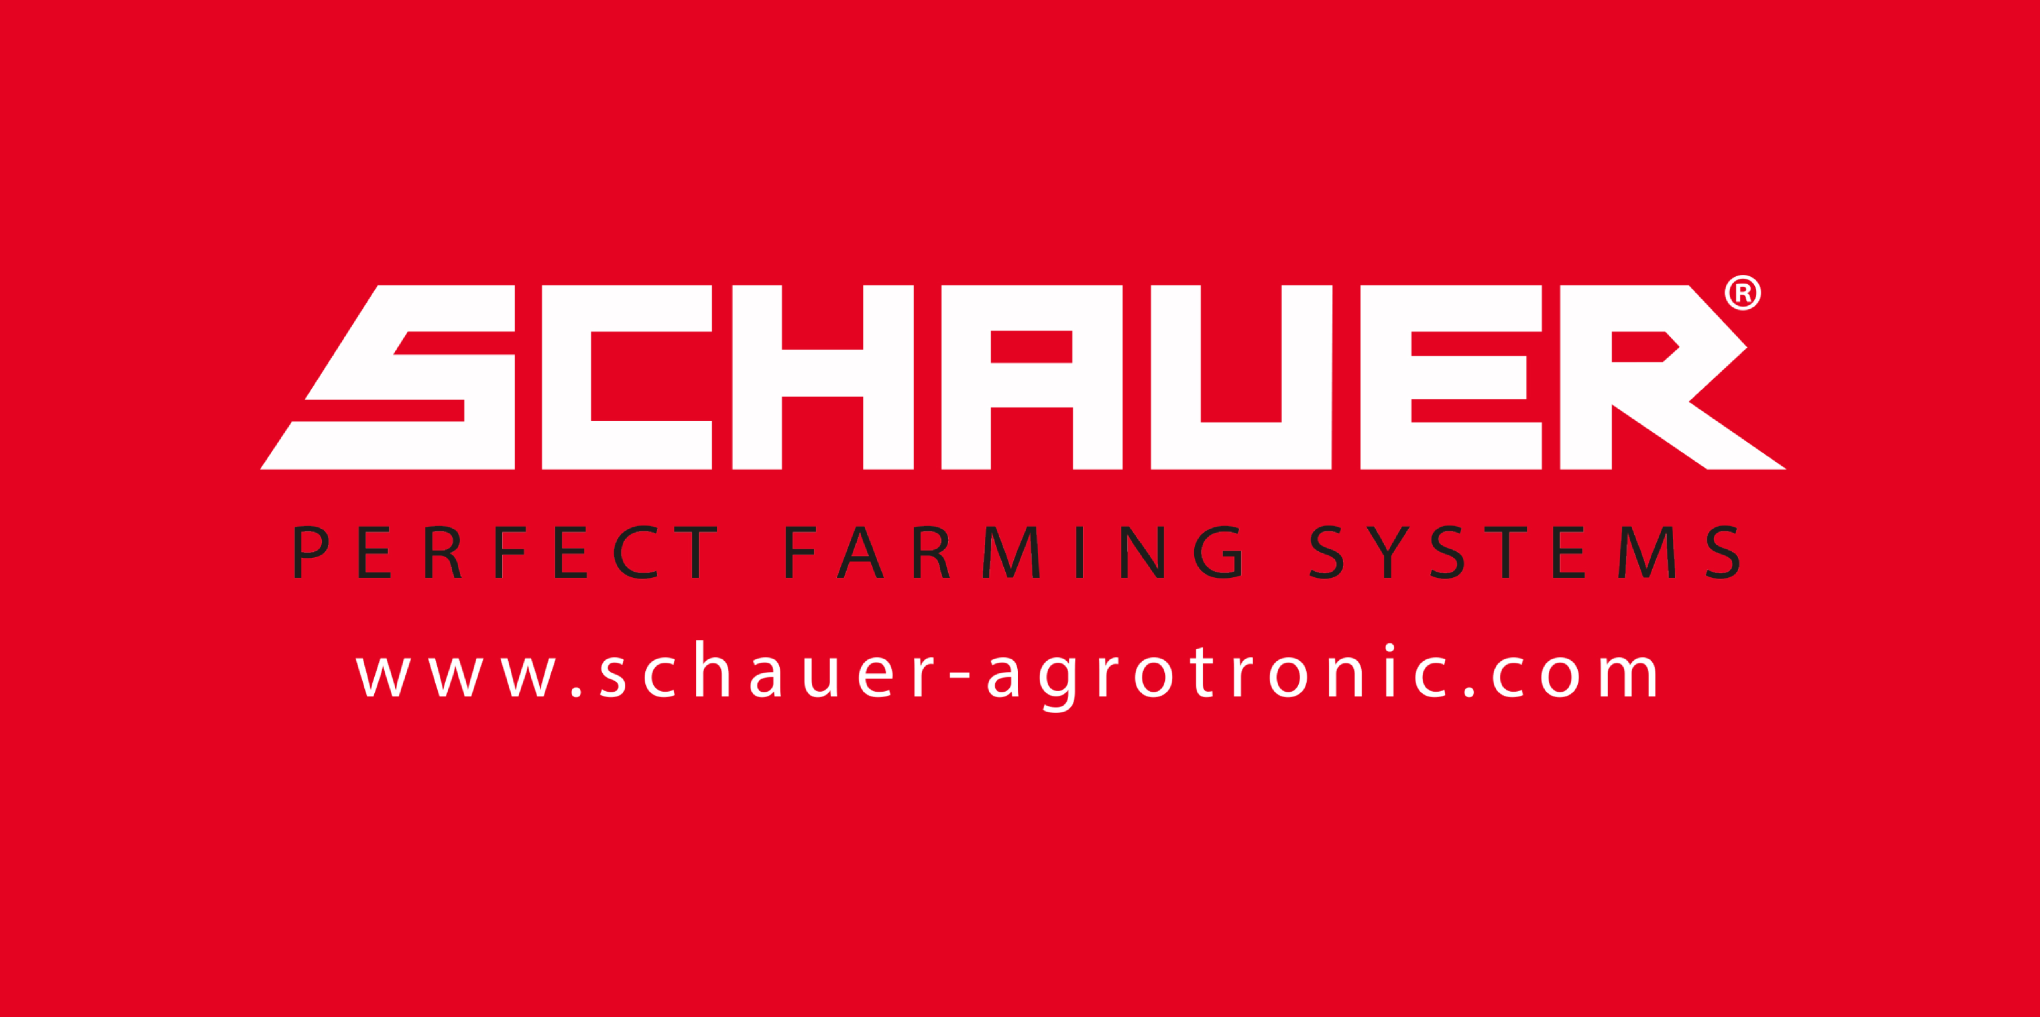 schauer_agrotronic.png